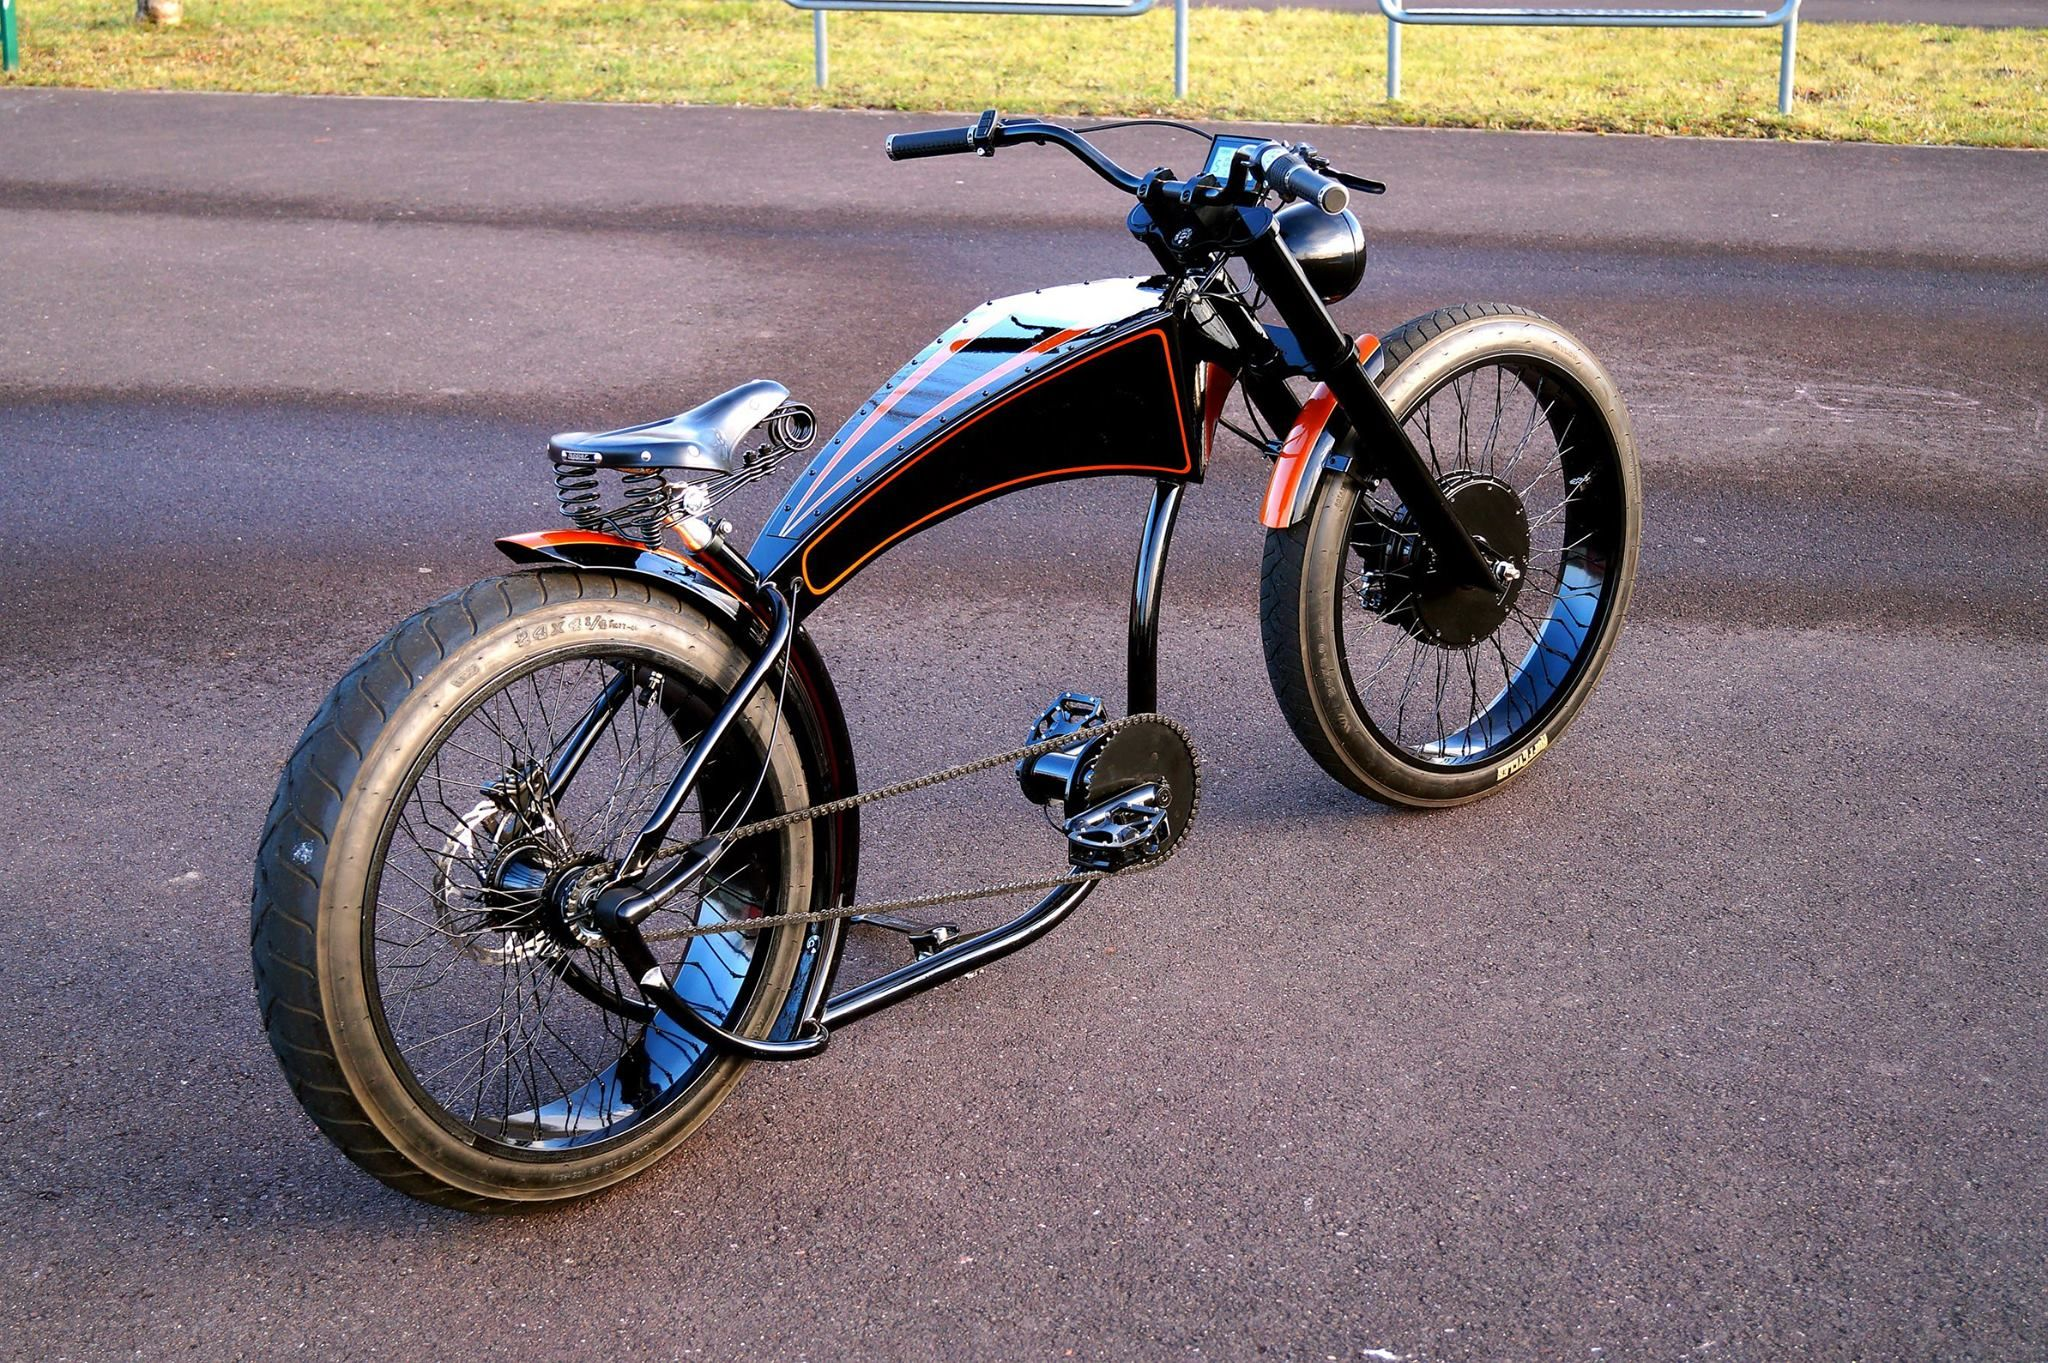 Pin by Alter Ego on Bicycles | Pinterest | Choppers, Mopeds and ...